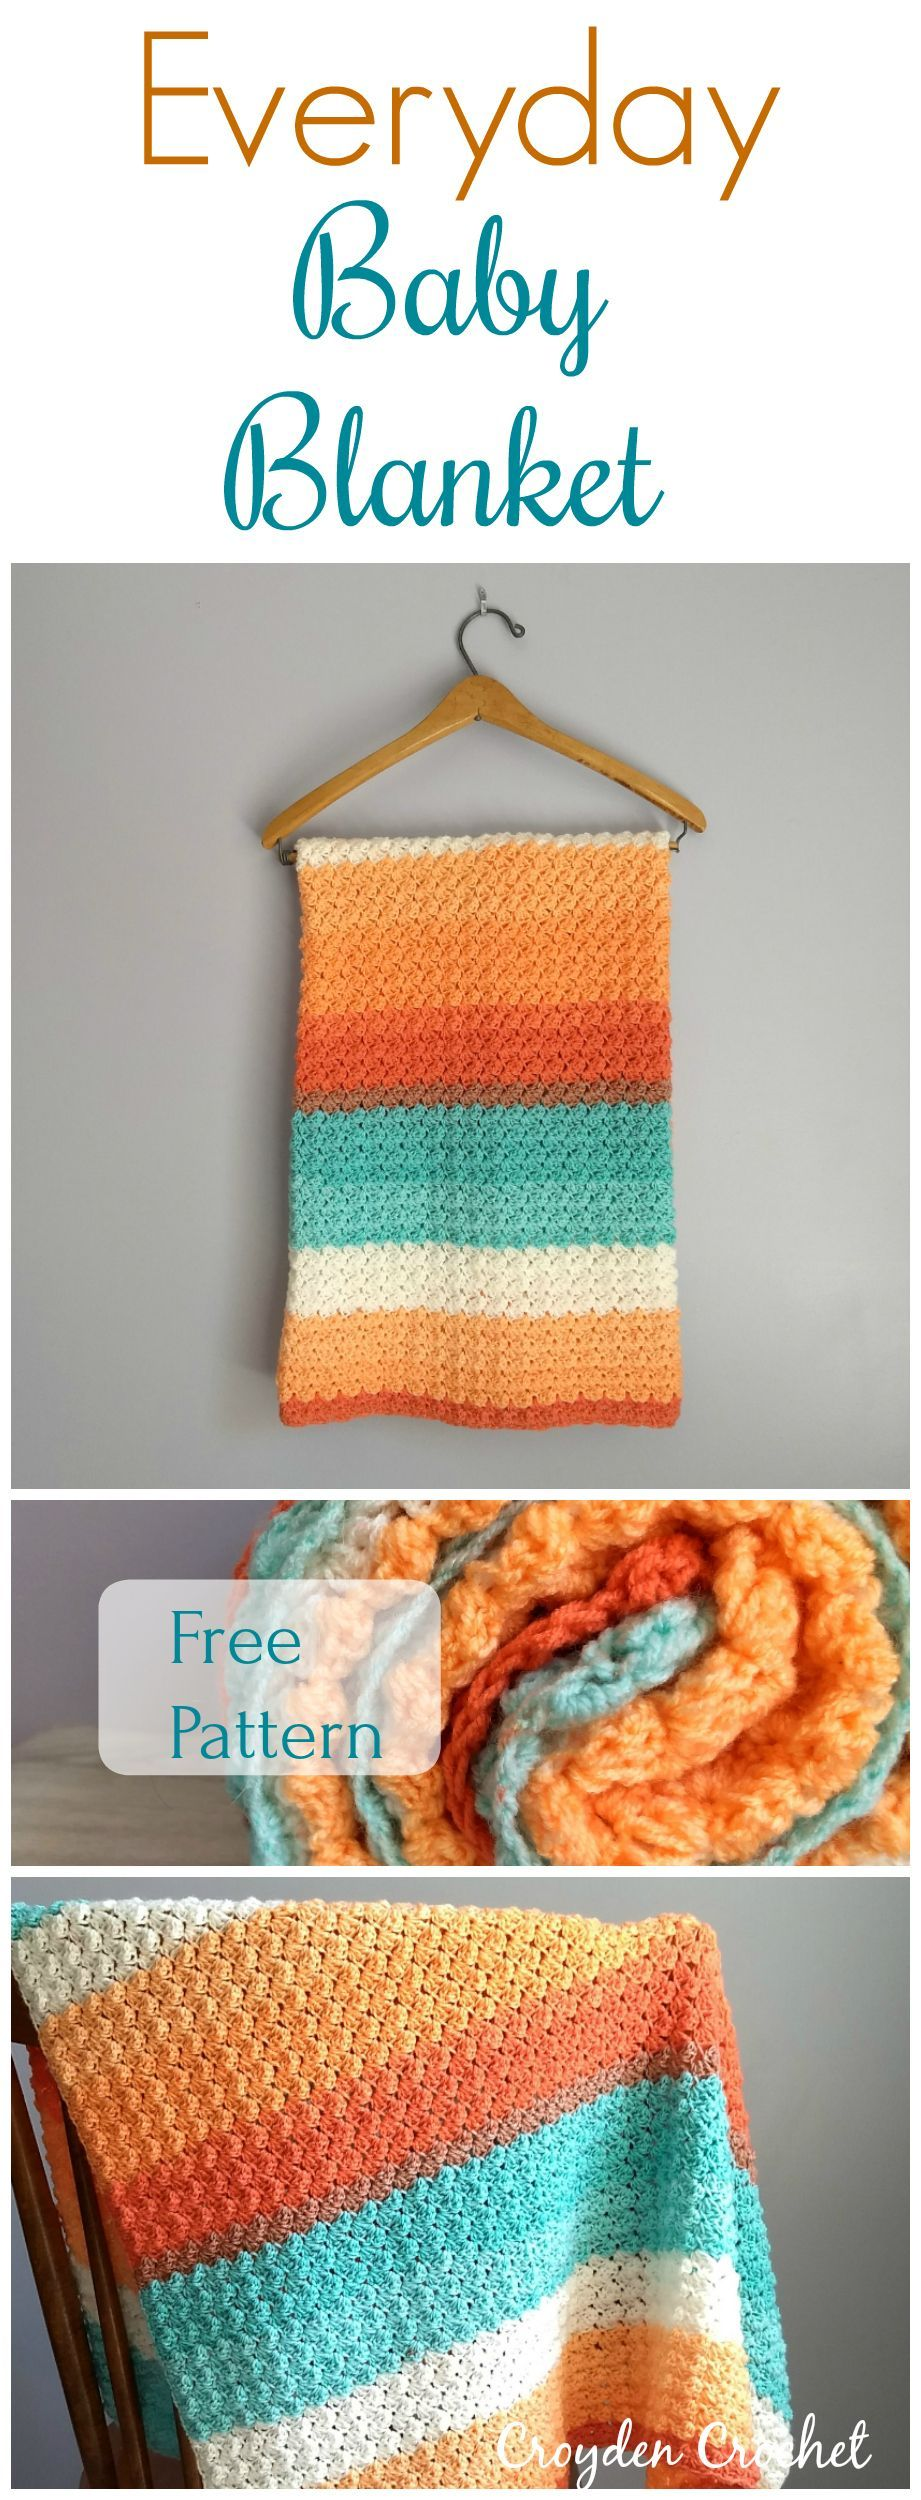 Free Pattern By Croyden Crochet Crochet This Fast And Easy Everyday